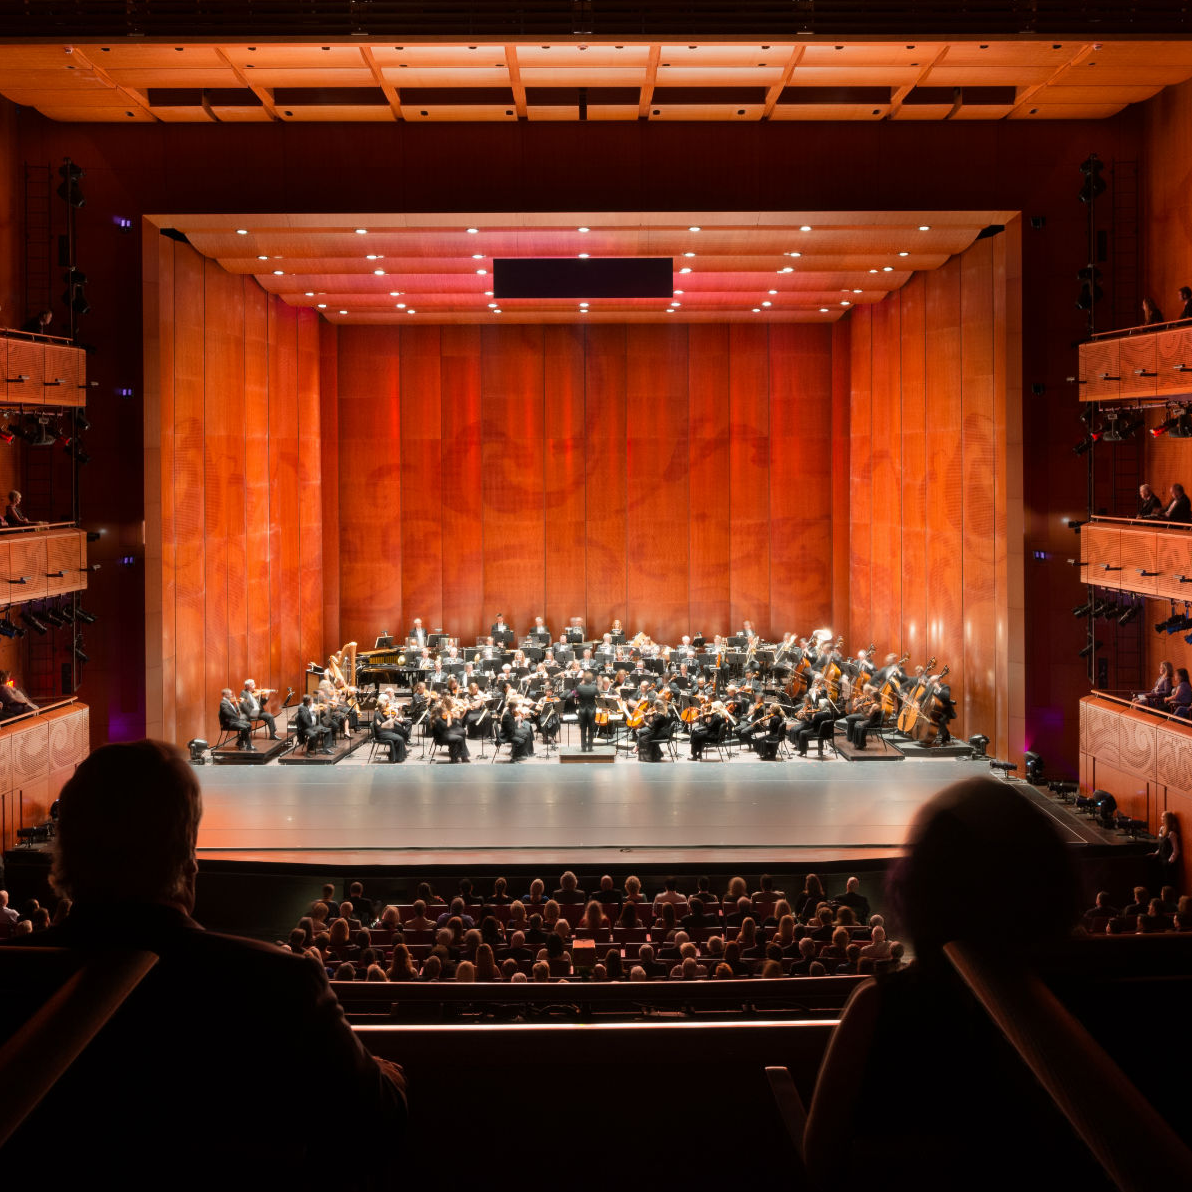 San Antonio Symphony at Tobin Center for the Performing Arts